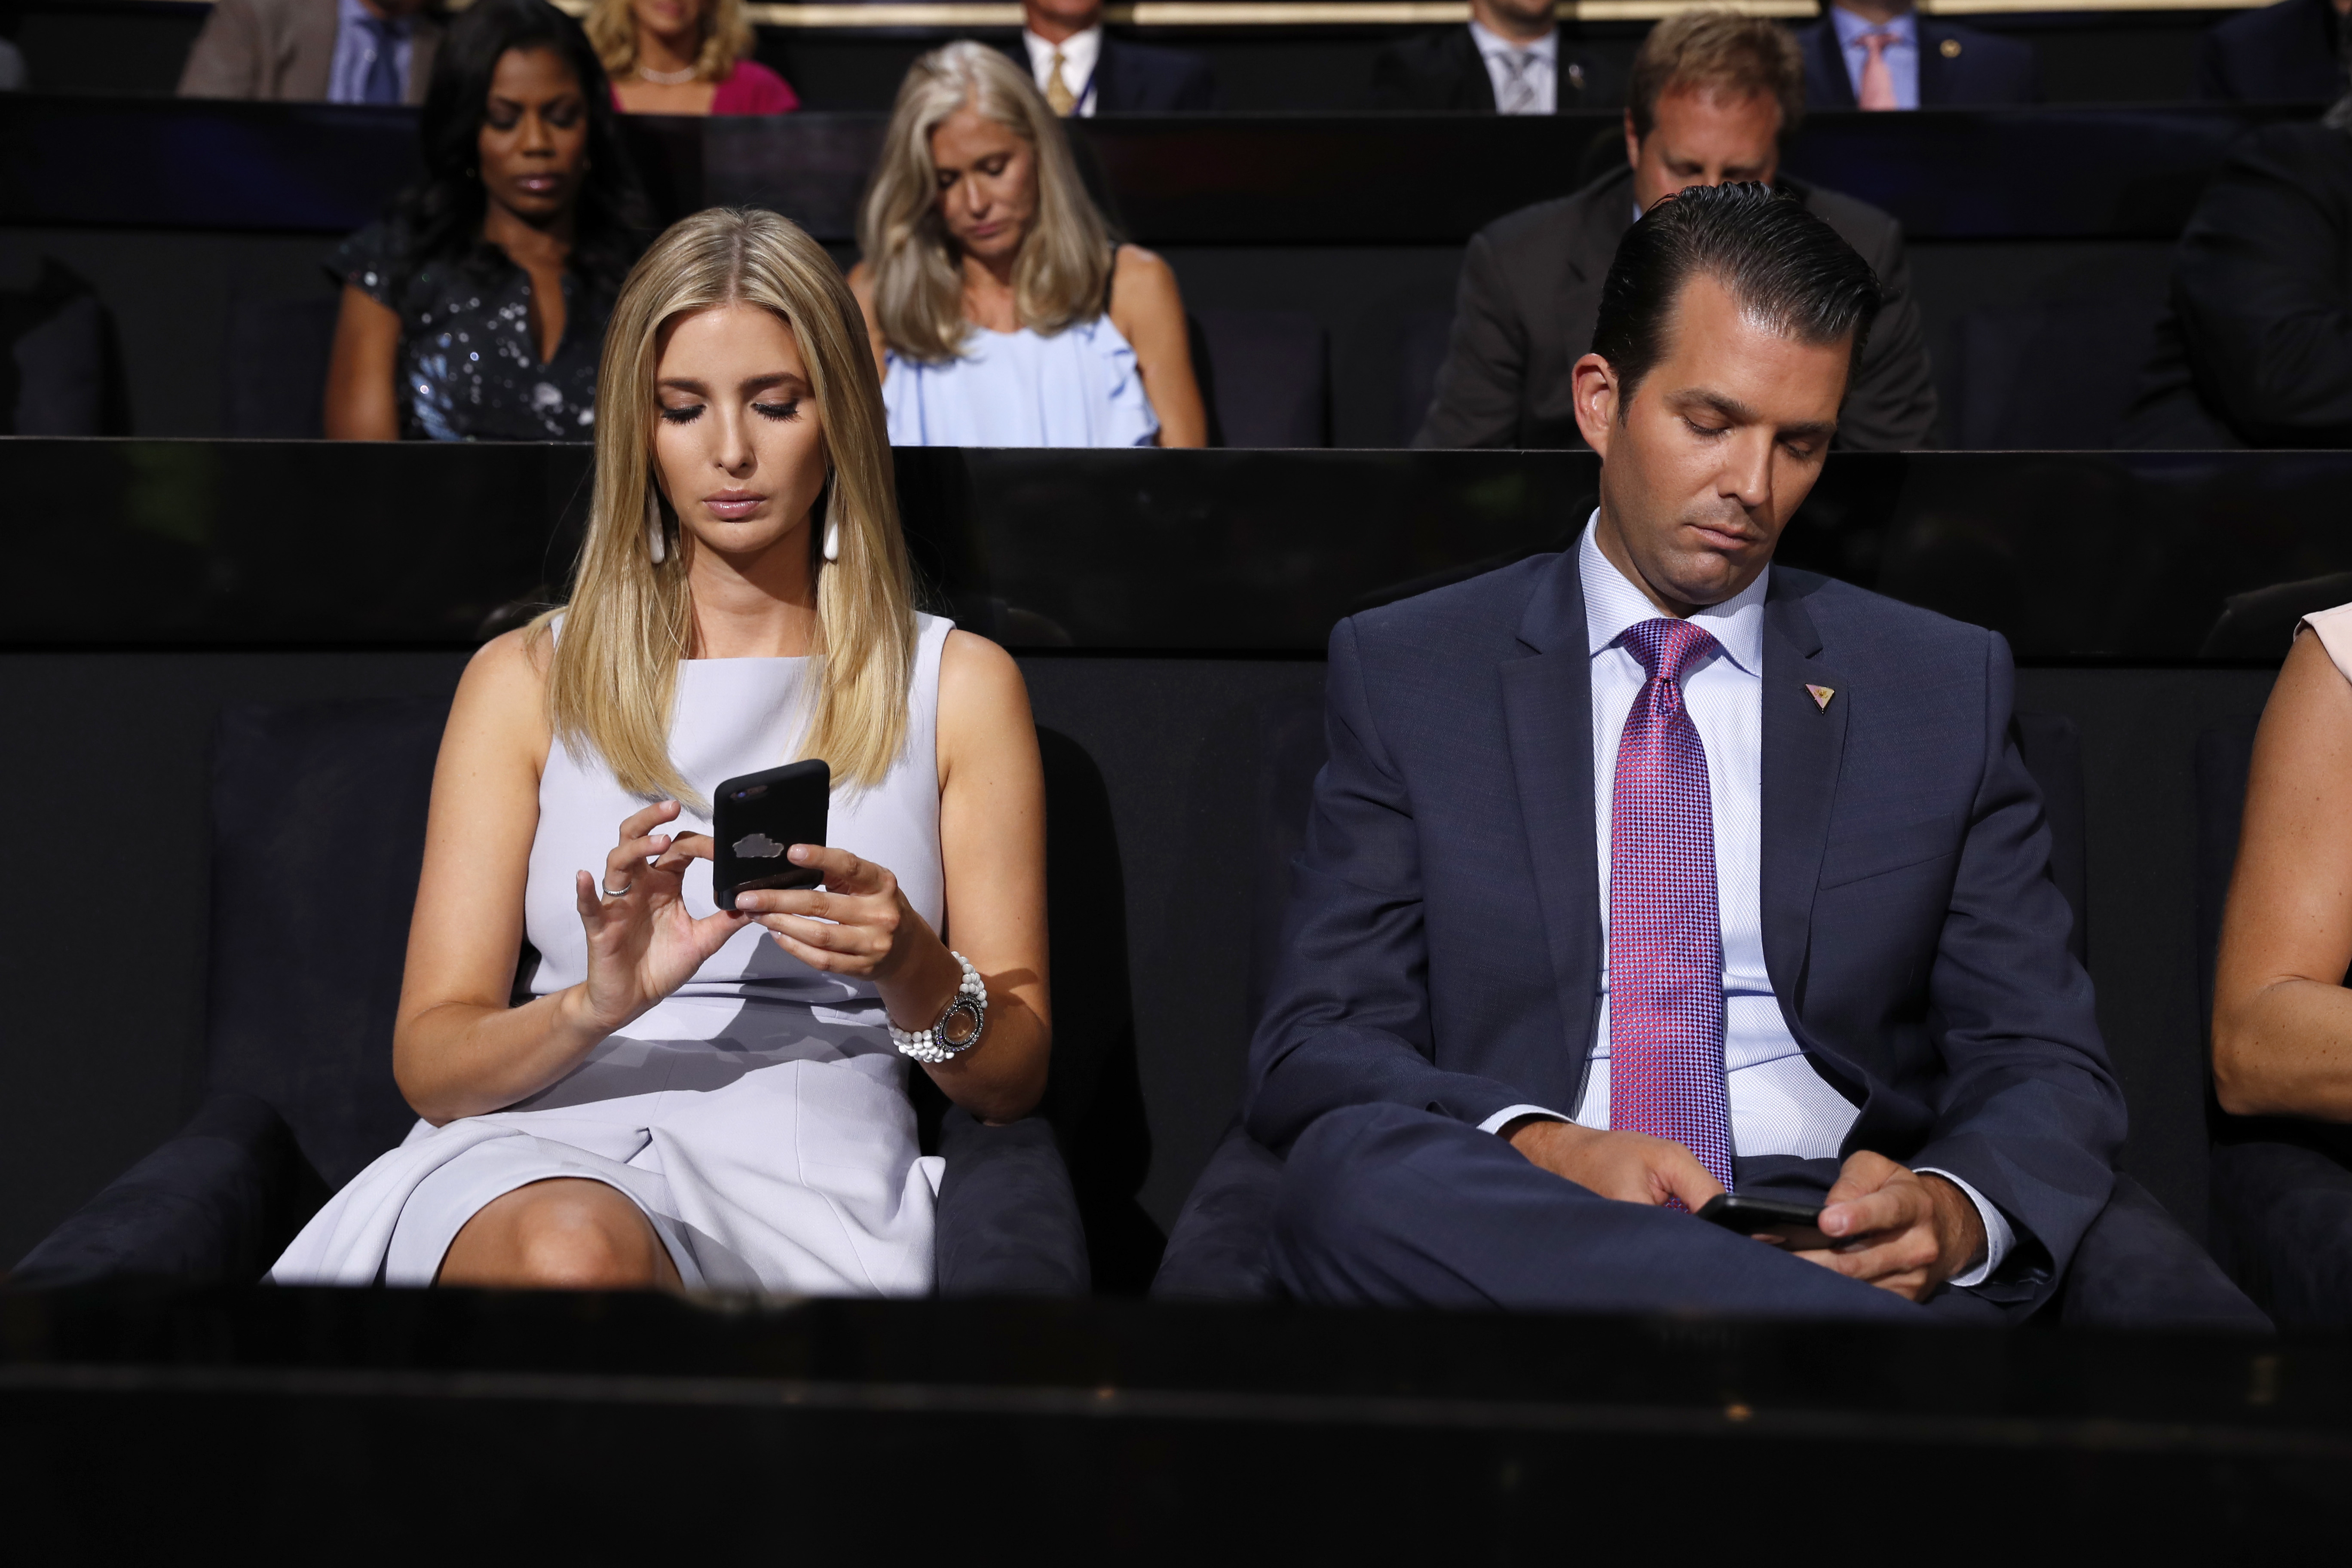 Donald Trump's children Ivanka Trump and Donald Trump Jr., during the second day session of the Republican National Convention in Cleveland, Tuesday, July 19, 2016. (AP Photo/Carolyn Kaster)